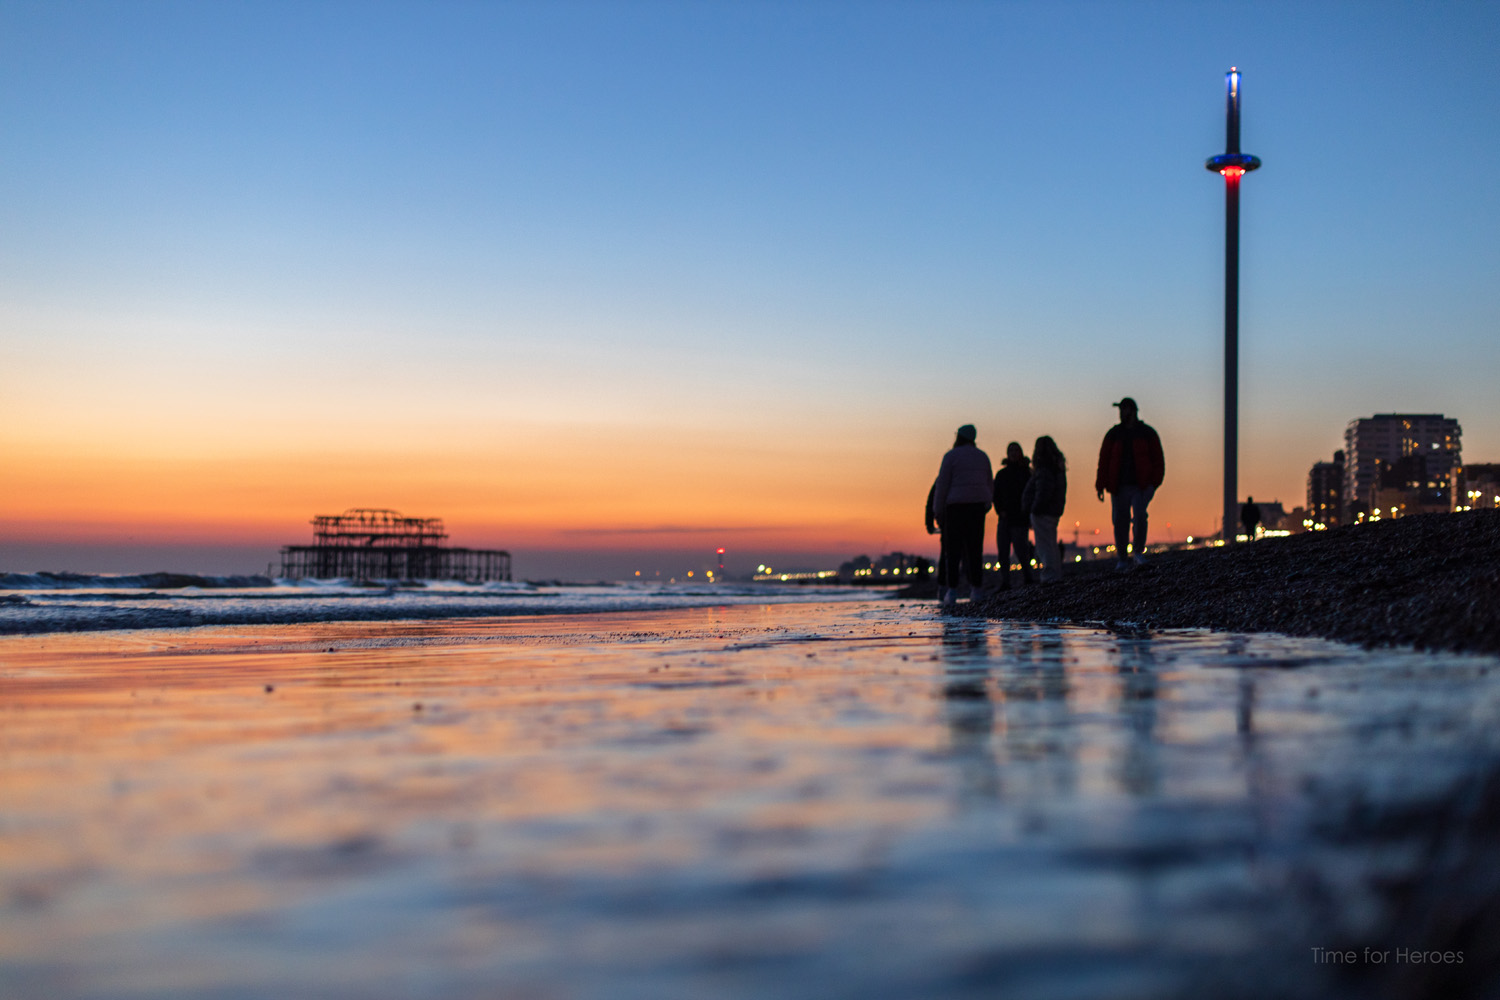 Saharan Seafront sunset 2 - Brighton - Ashley Laurence - Time for Heroes Photography